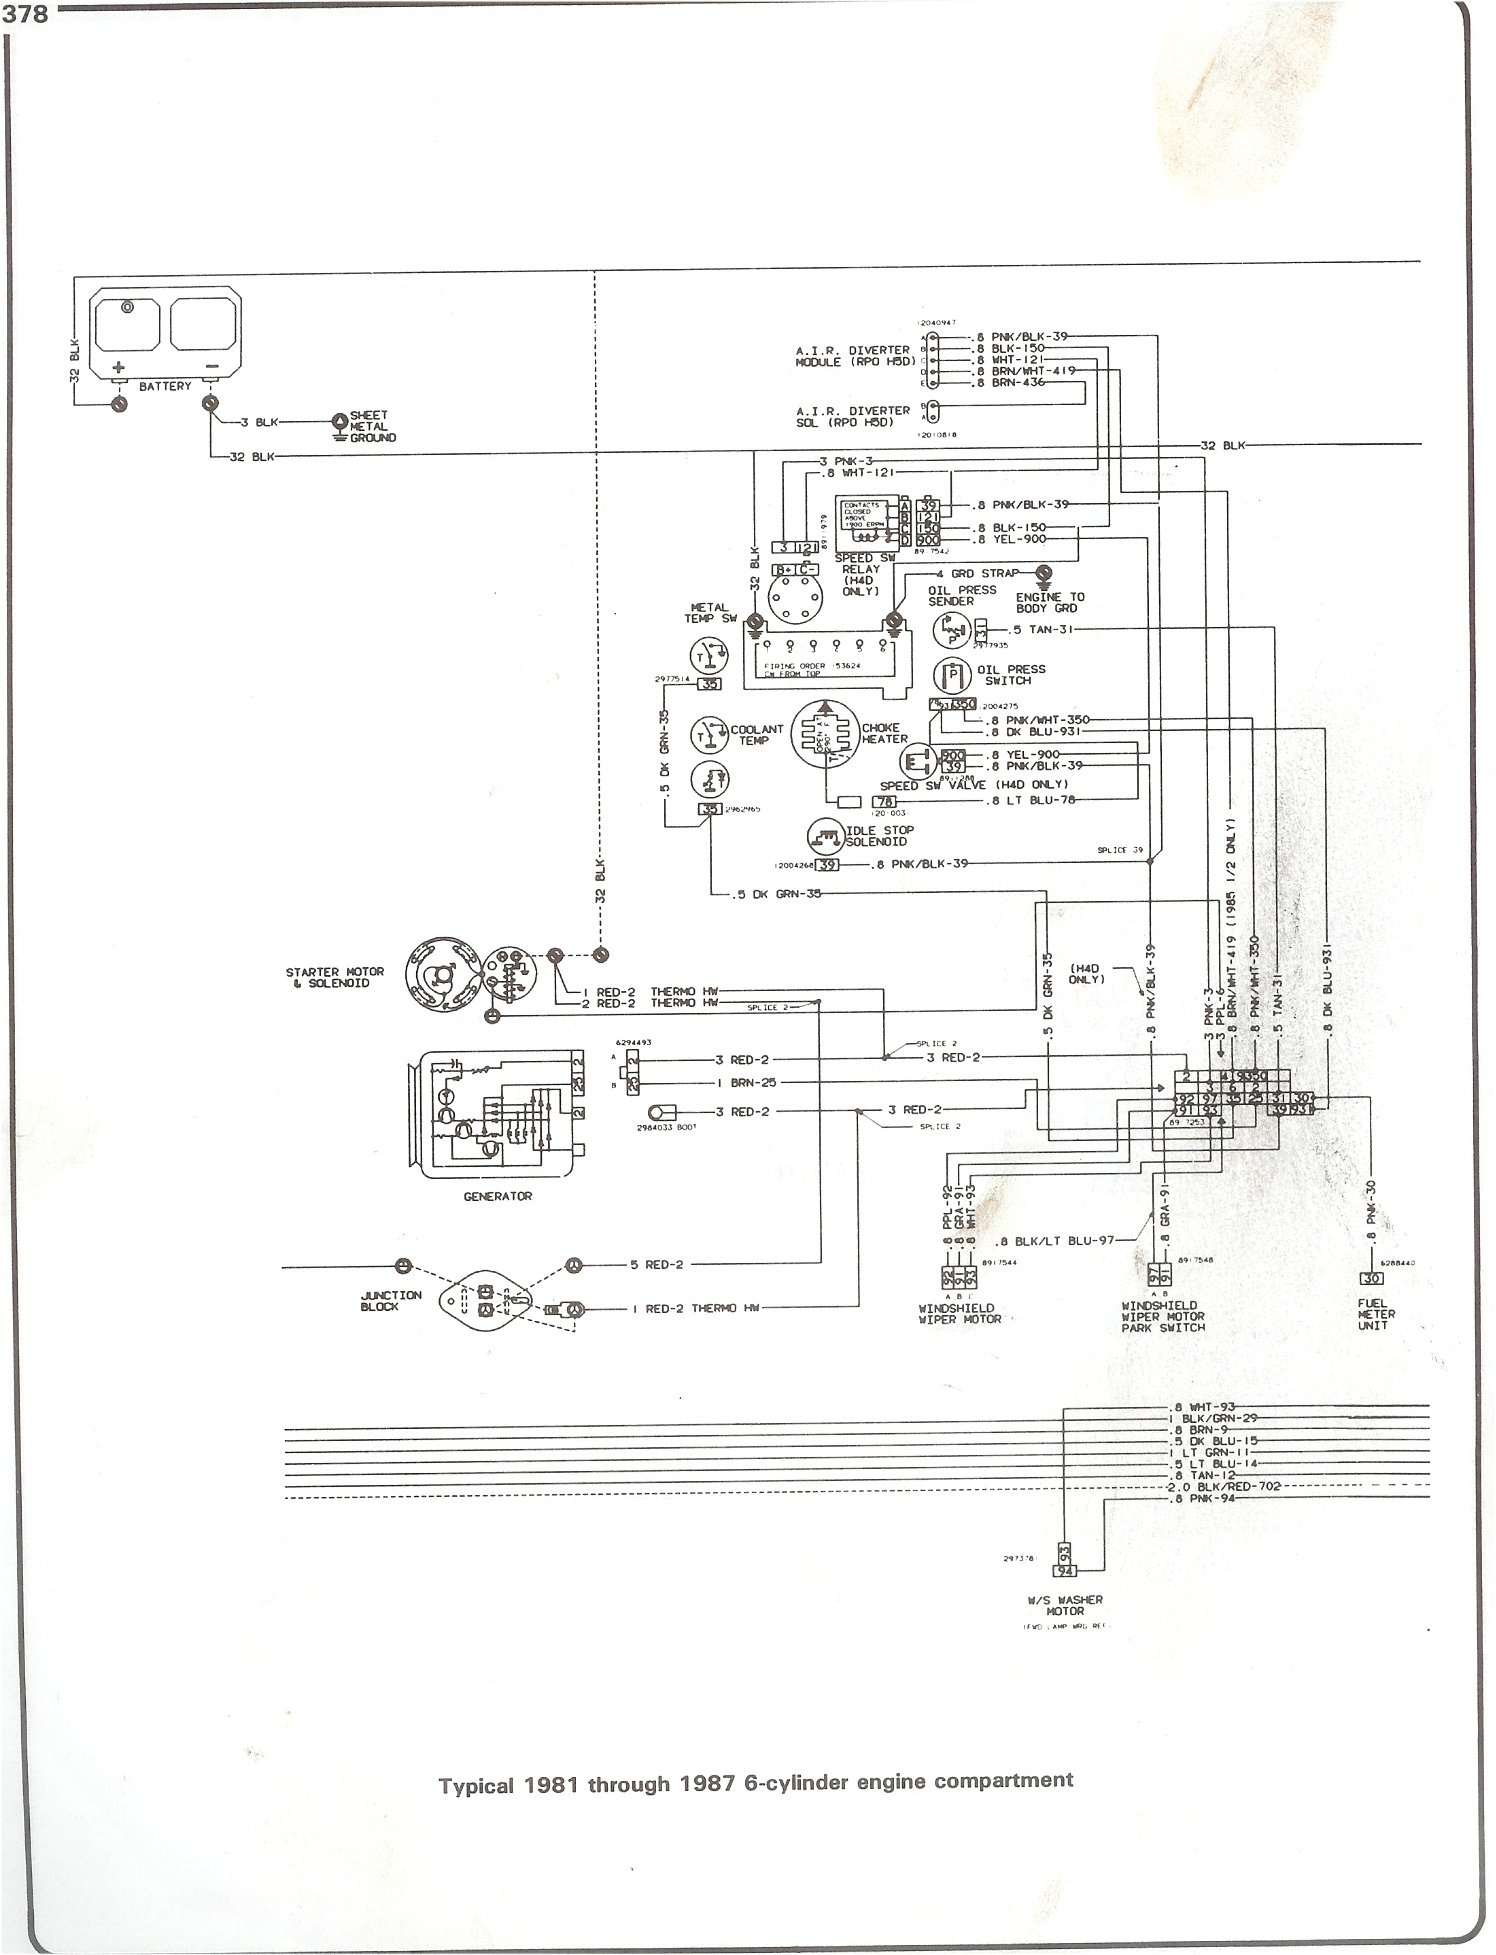 81-87 i6 engine compartment complete 73-87 wiring diagrams